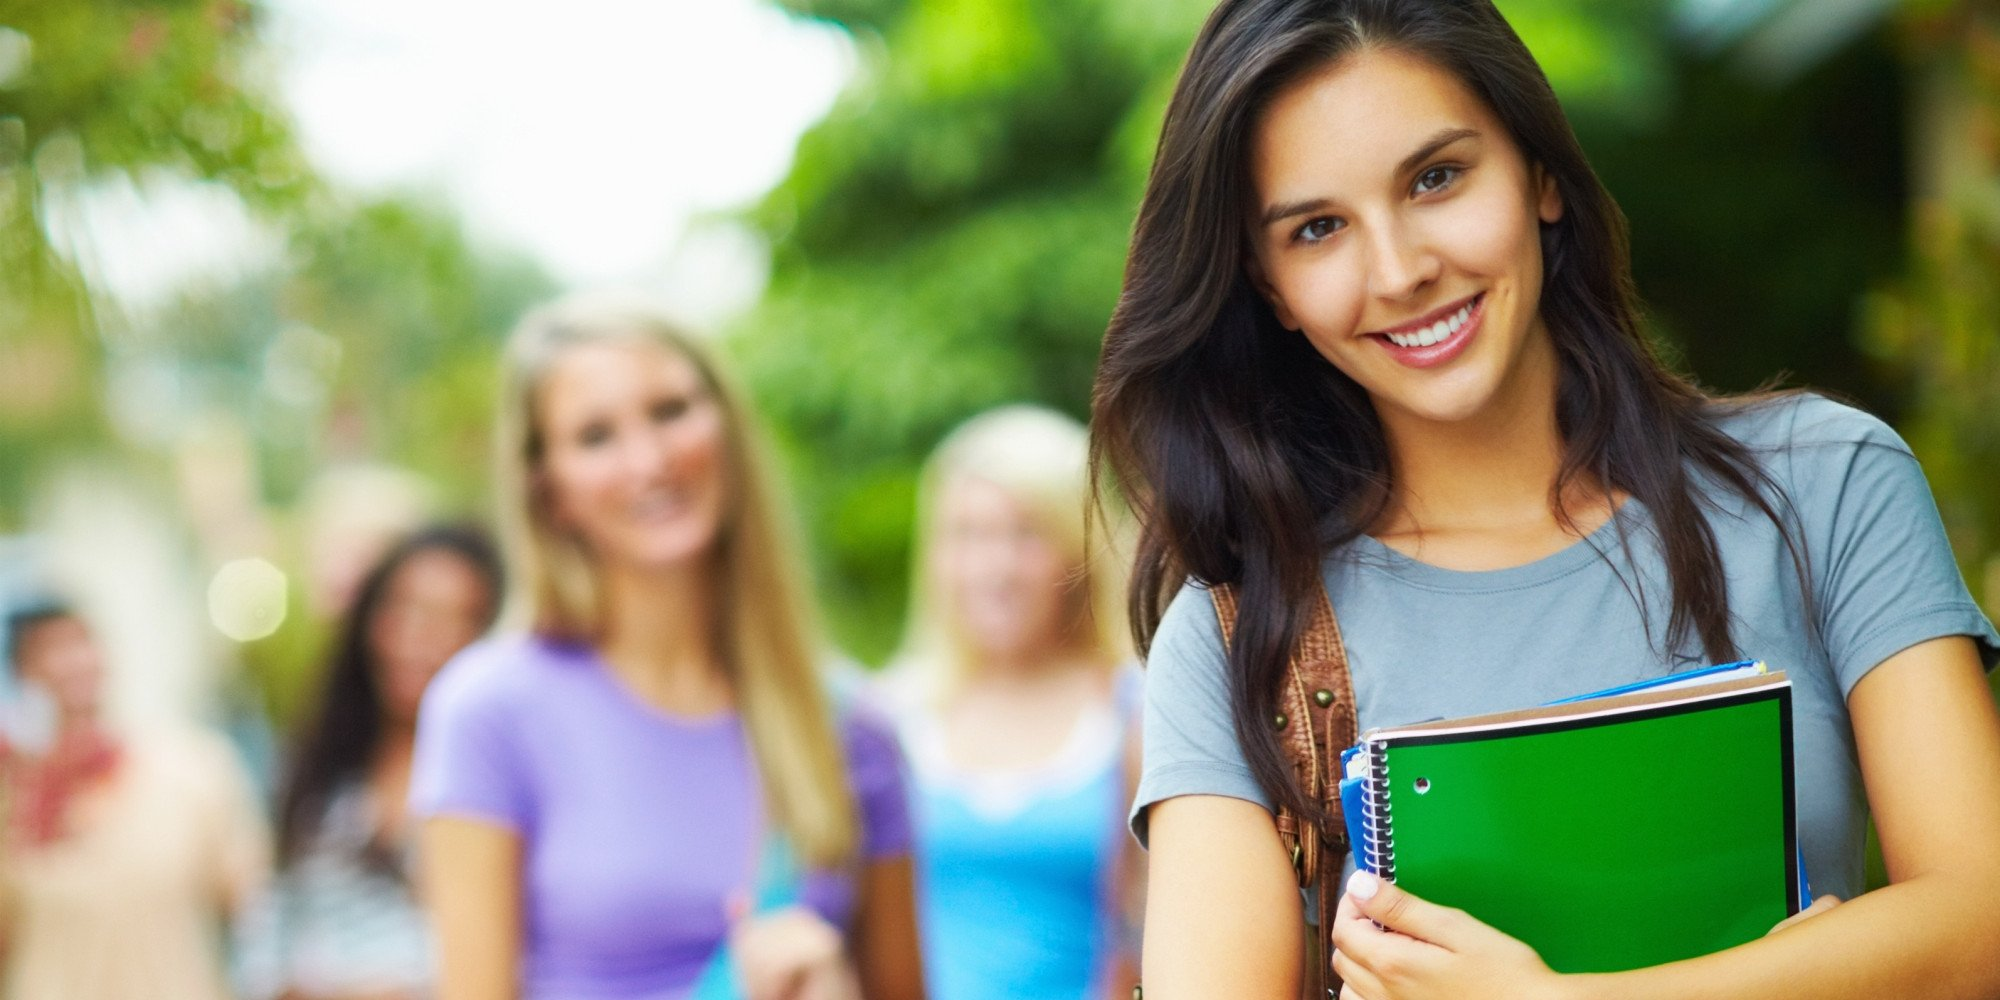 """""""#CollegeDegree #OnlineCollege #OnlineDegree visit-> https://t.co/L0RmjUp62u for lots of easy info - #college #university #distancelearning"""""""